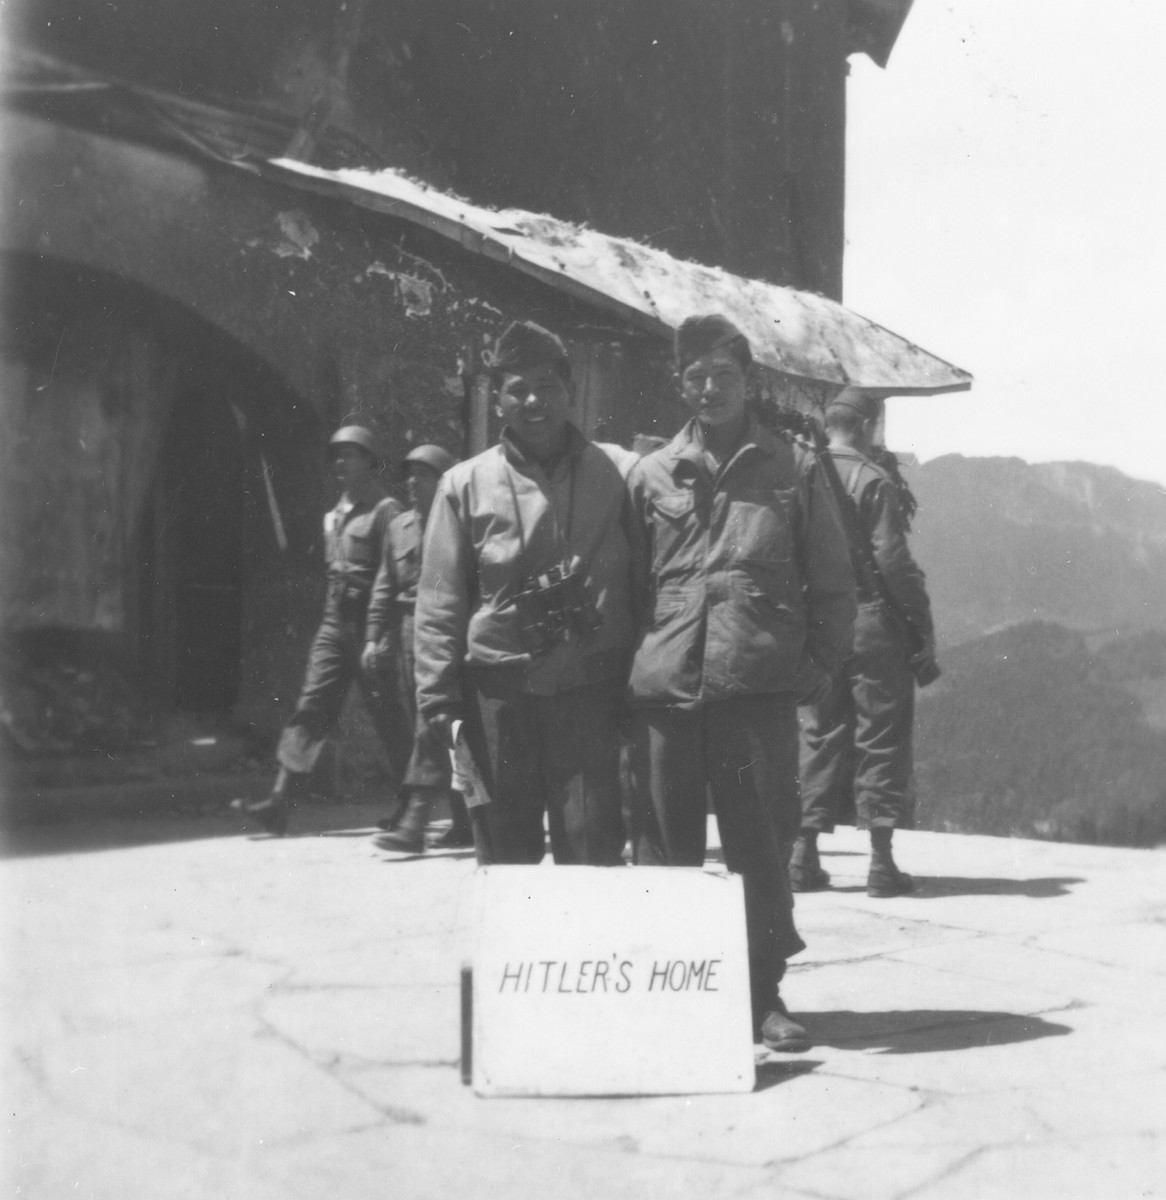 Royce Higa (left) and Hideo Nakamine (right), Japanese-American soldiers with the 522nd Field Artillery battalion, pose outside the destroyed Berghof, Hitler's mountain retreat in the Bavarian Alps.